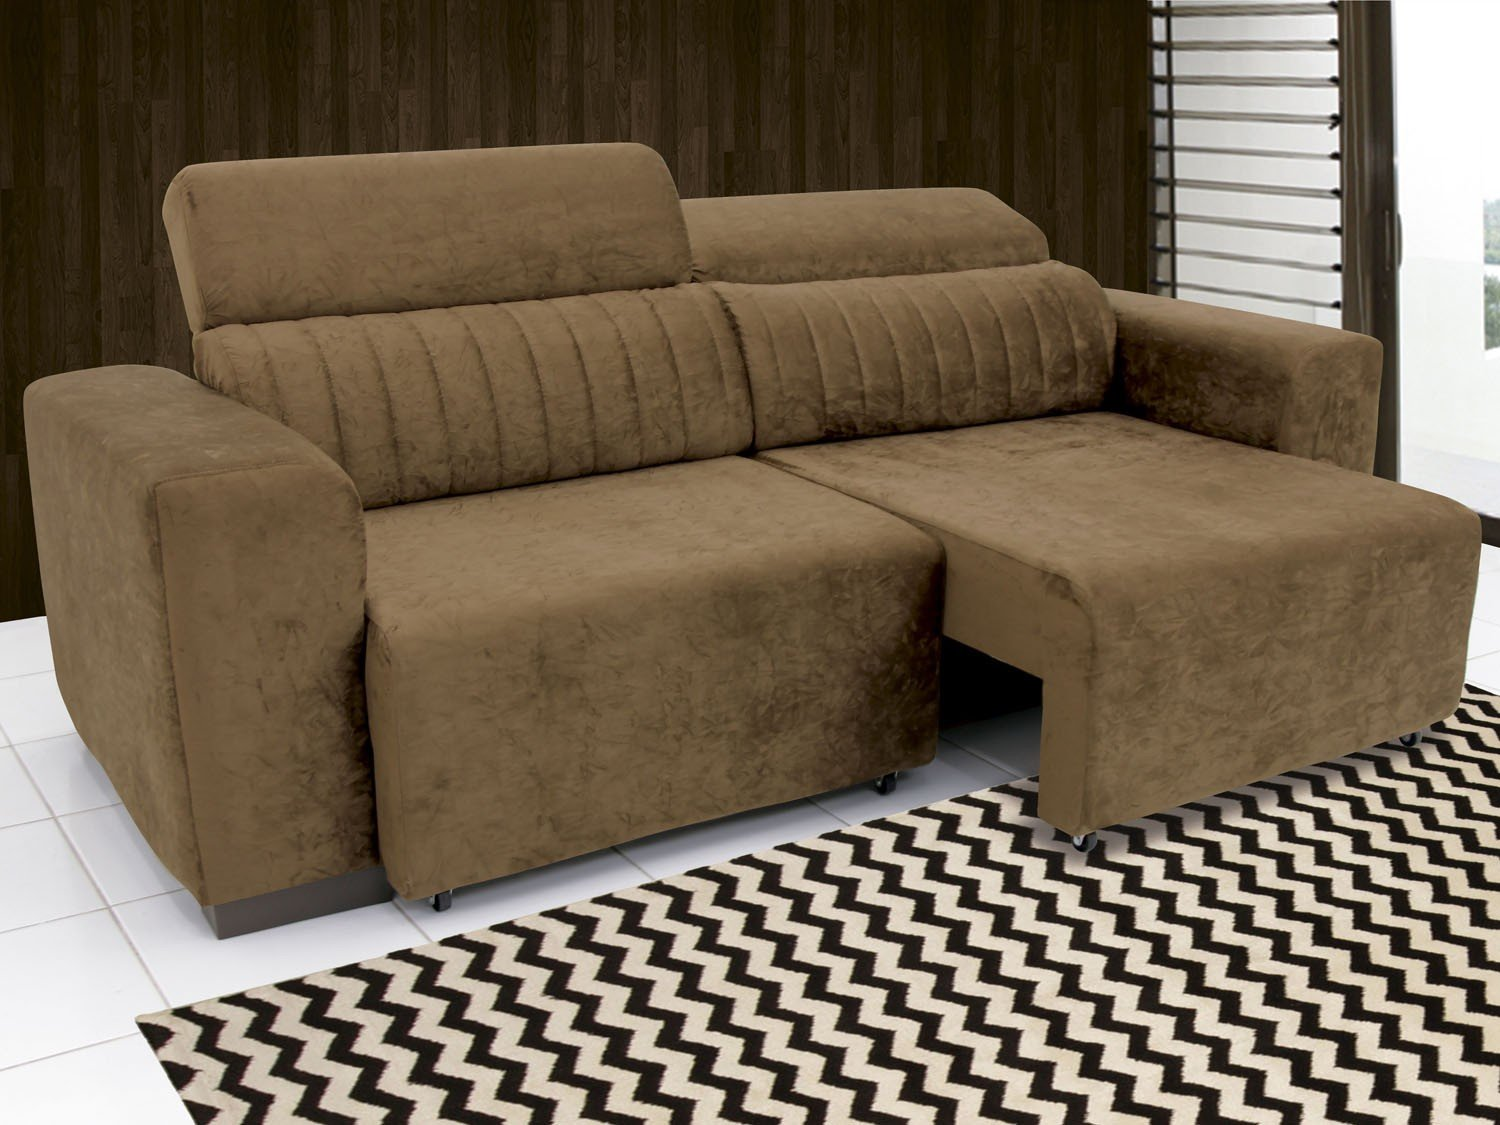 Sof retr til e reclin vel 4 lugares suede elite linoforte for Sofa 03 lugares retratil e reclinavel